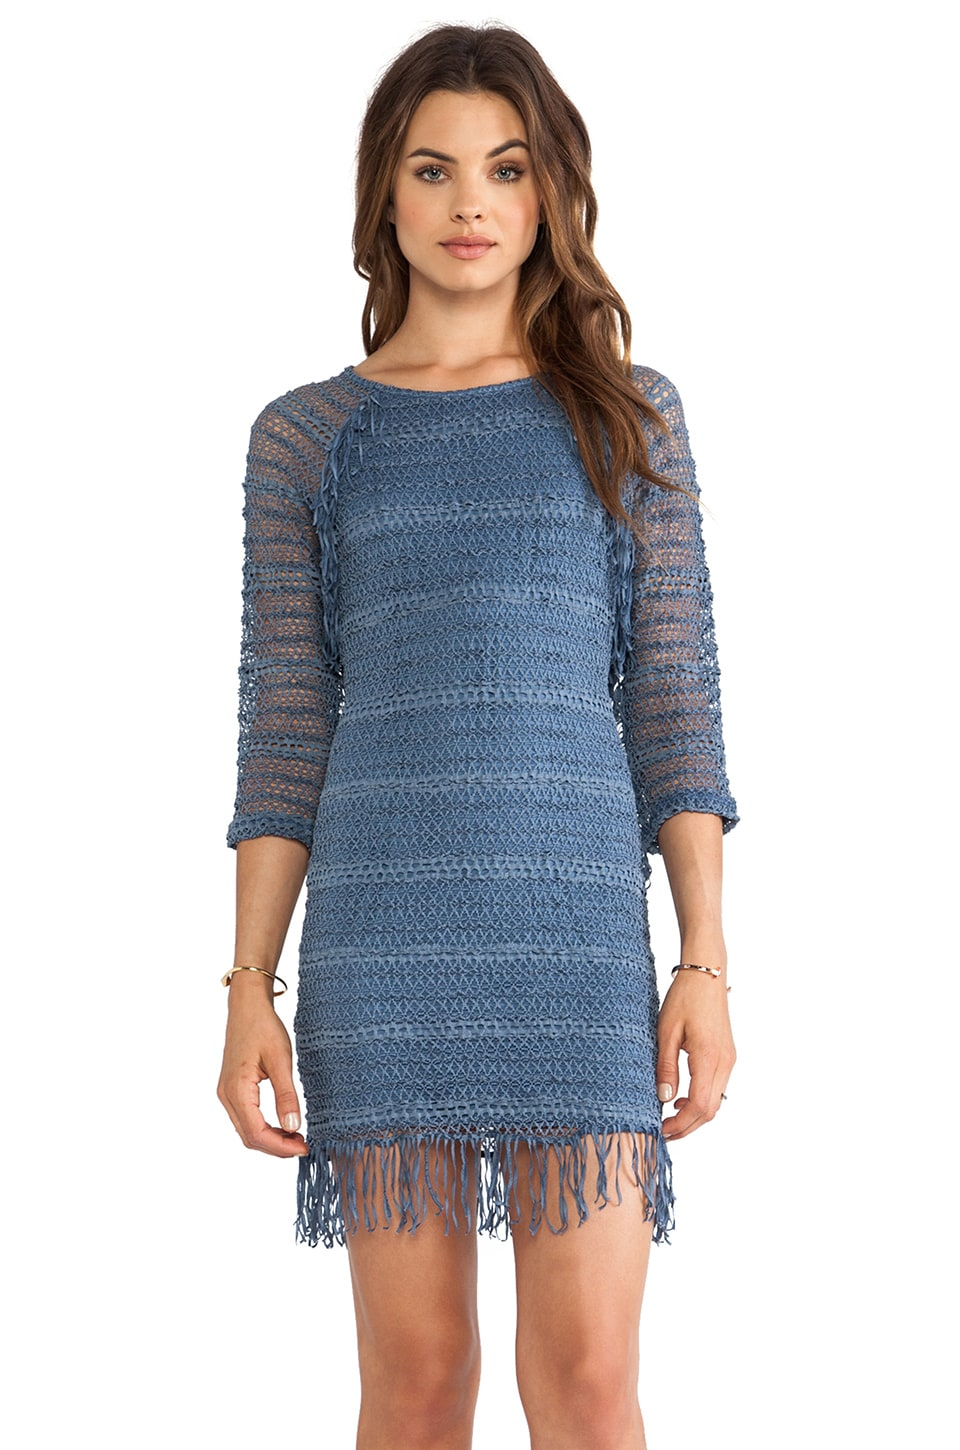 Nightcap Fringe Lace Raglan Dress in Denim Bleu